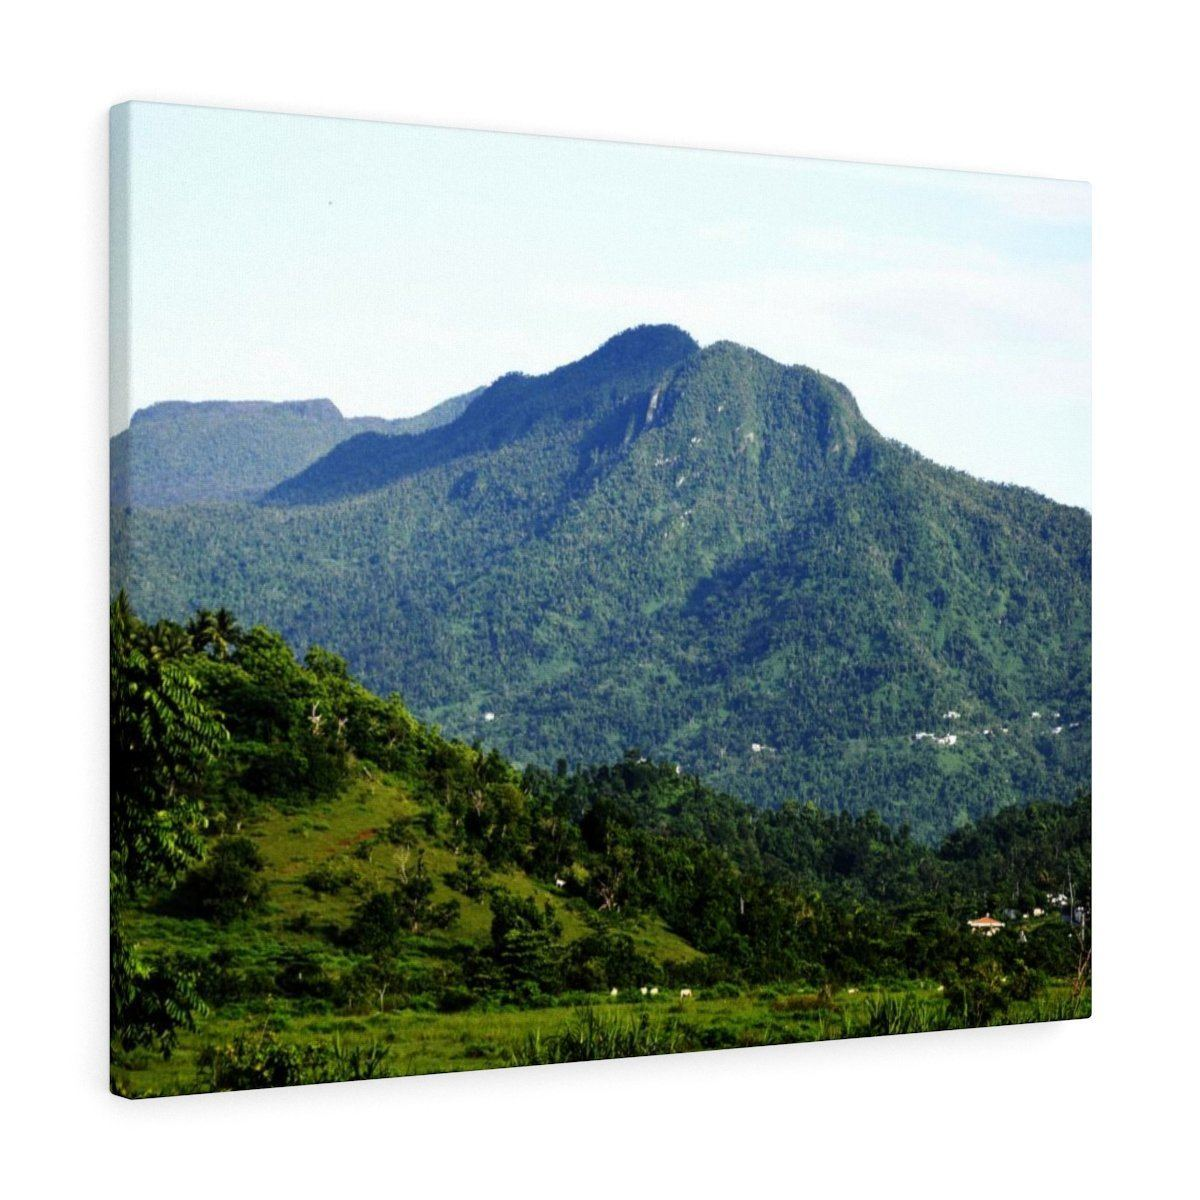 Canvas Gallery Wraps - US Made - CG Pro Prints in 2 days - Rio Sabana - El Yunque exploration on Sep 2019 - La Mina mountains were we are going - from PR 52 Canvas Printify